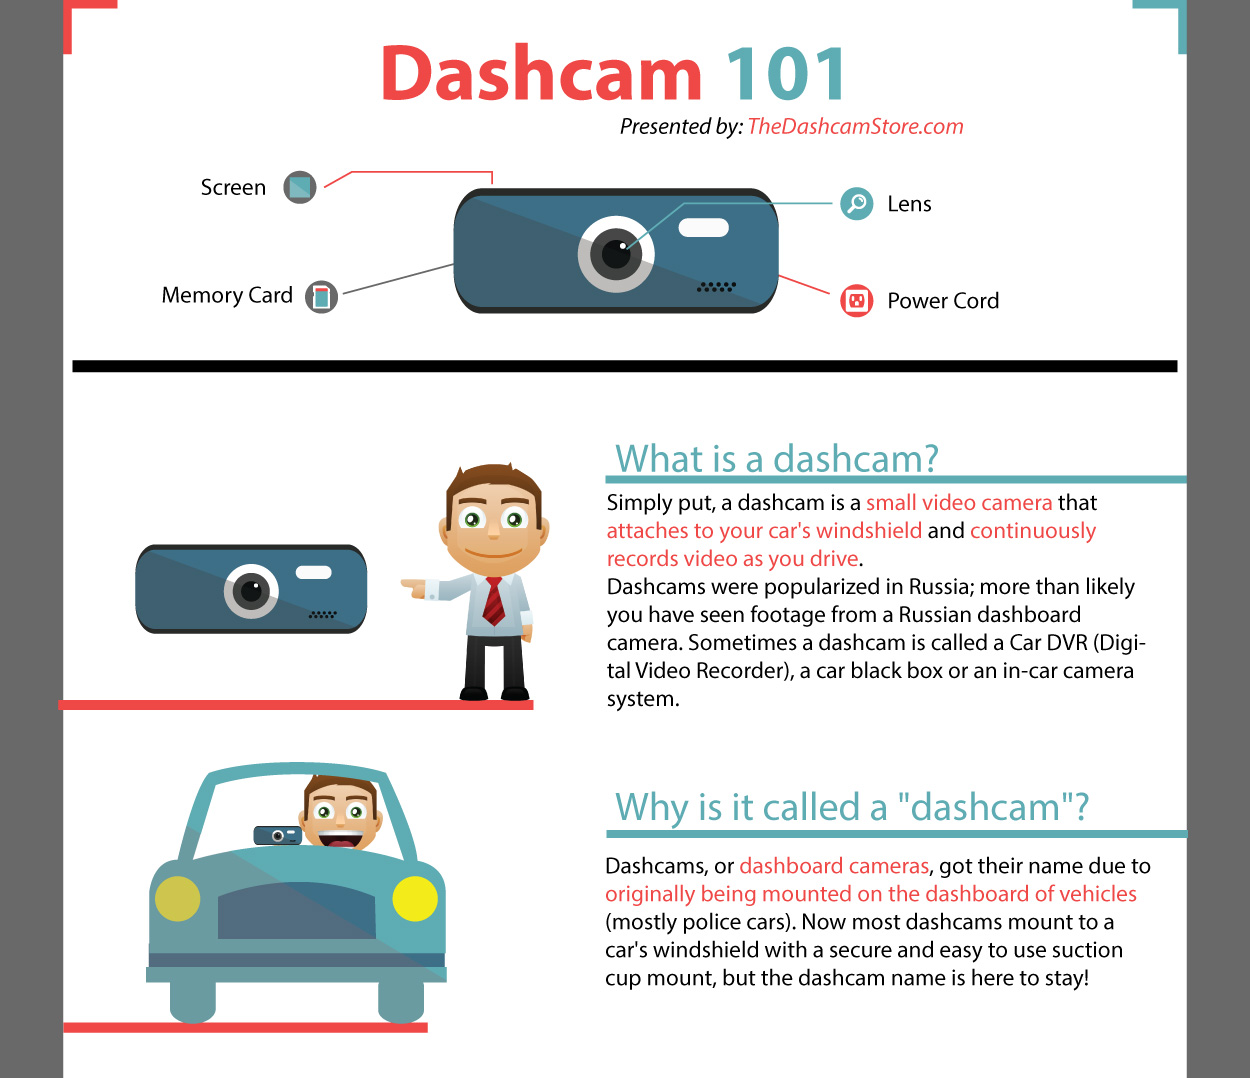 infographic: Dashcam 101 by The Dashcam Store